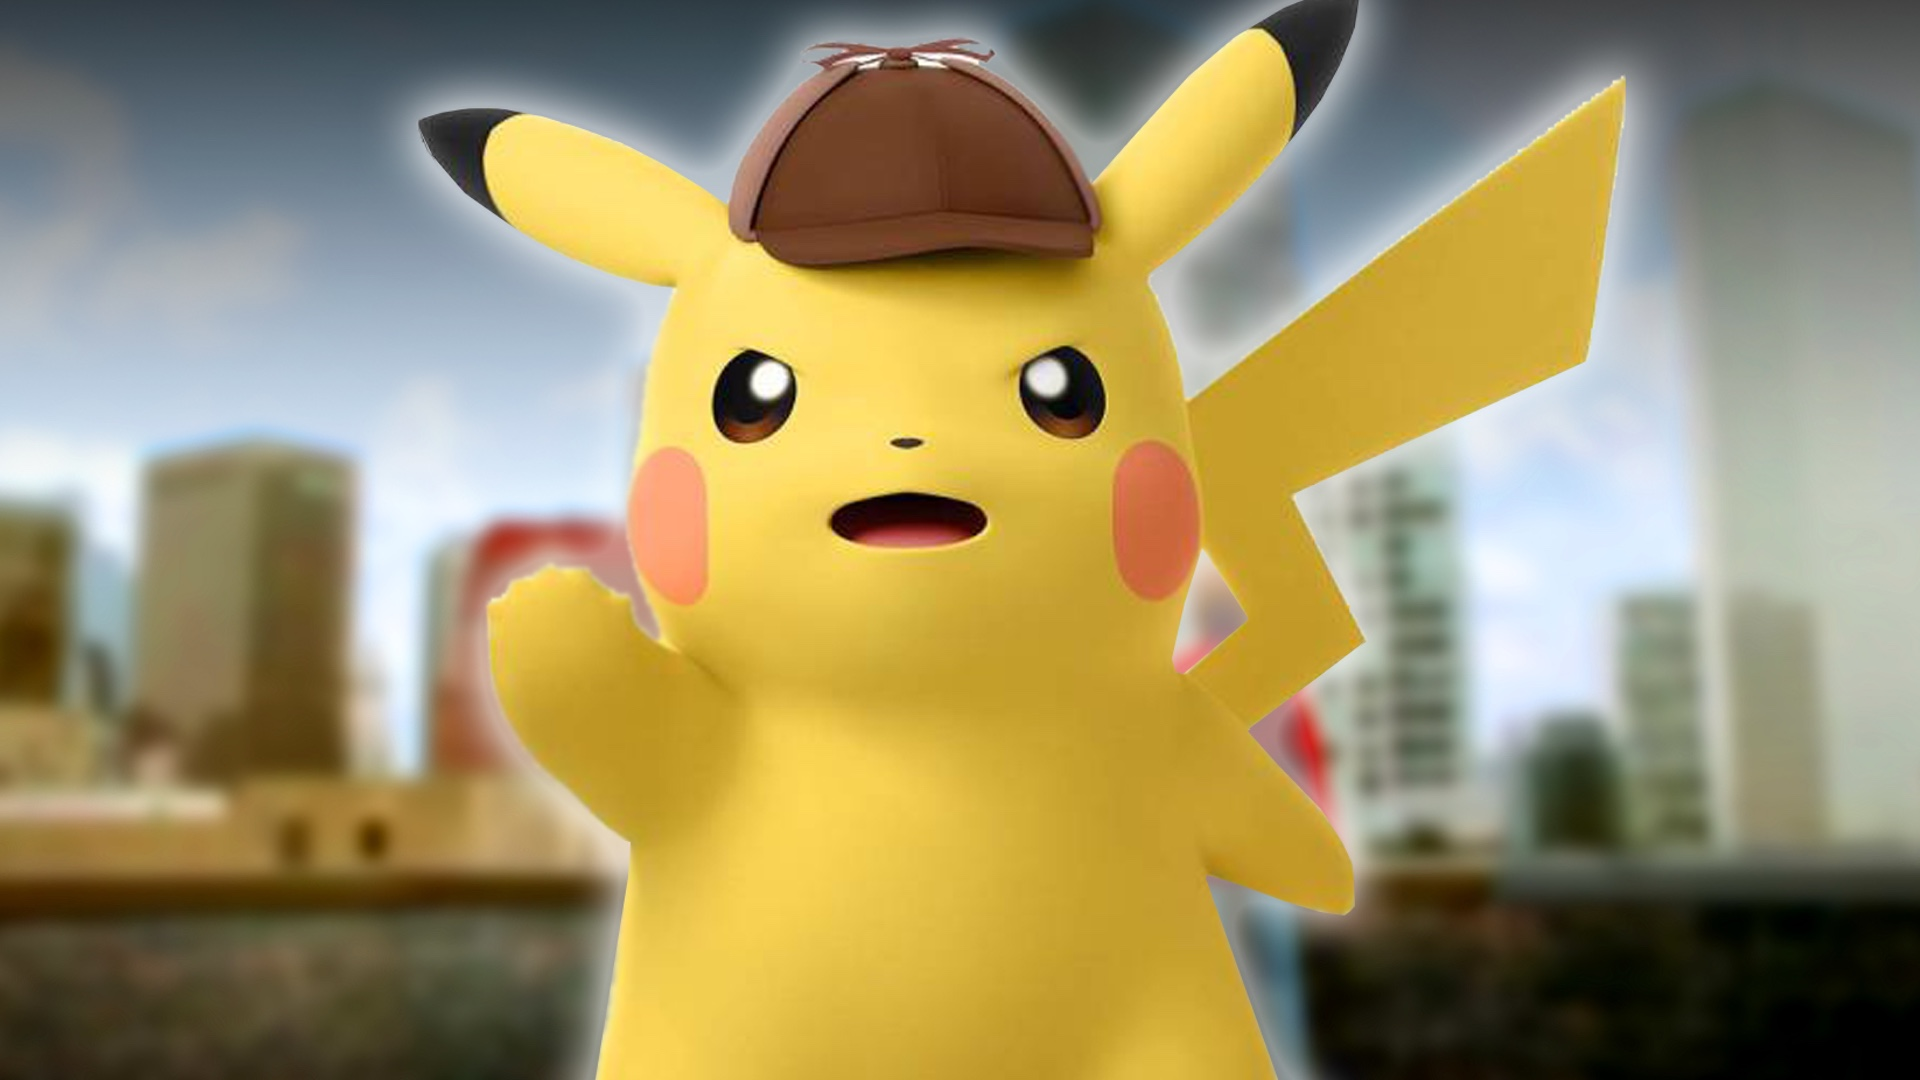 Gravity Falls Wallpaper 1920x1080 The Detective Pikachu Pokemon Movie Will Be Directed By